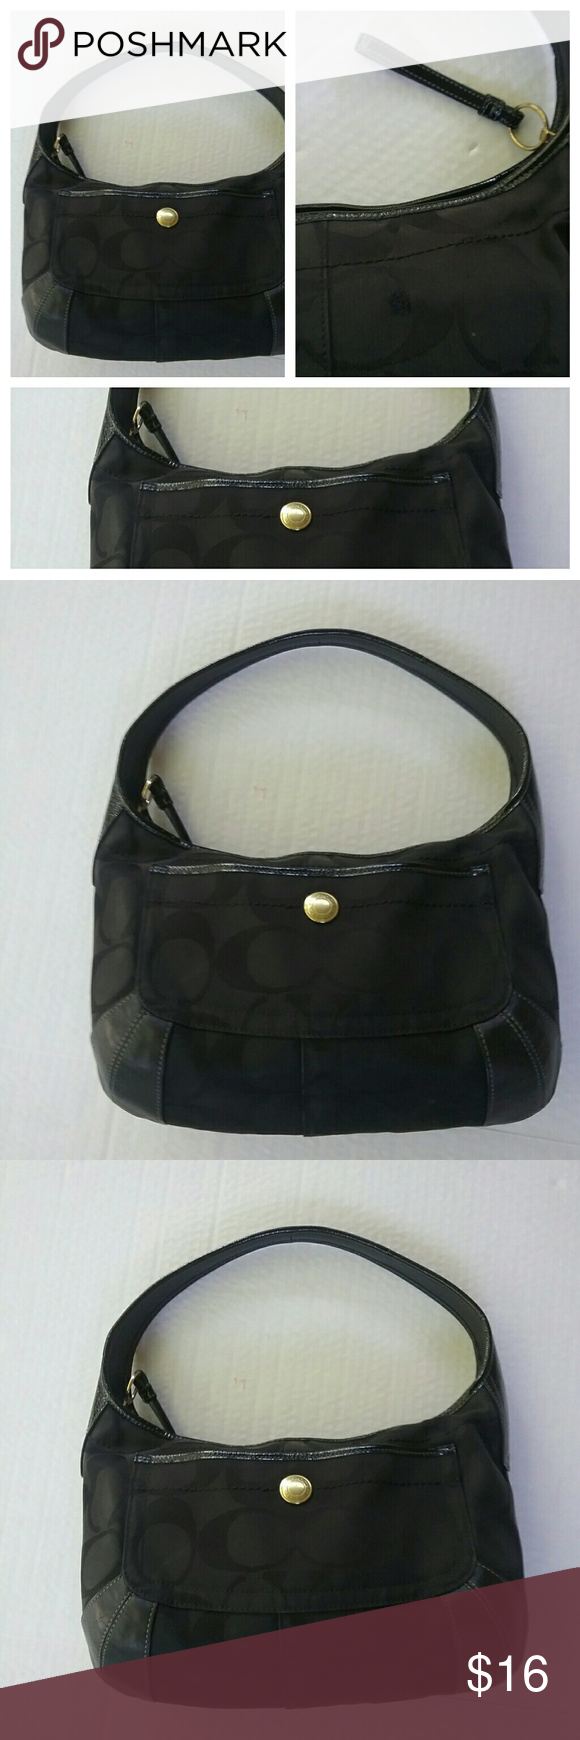 COACH BLACK LOGO HANDBAG PURSE This is a nice black coach logo handbag. The trim and leather is in good condition. The inside is clean. I am selling this bag with big as there is a tiny hole about a half of inch big on the back. I tried to capture it in a picture it is mostly a pray and not a true hole and is hardly noticeable but I am adjusting the price for that defect. There are three tiny white stains on the back. Coach Bags Shoulder Bags